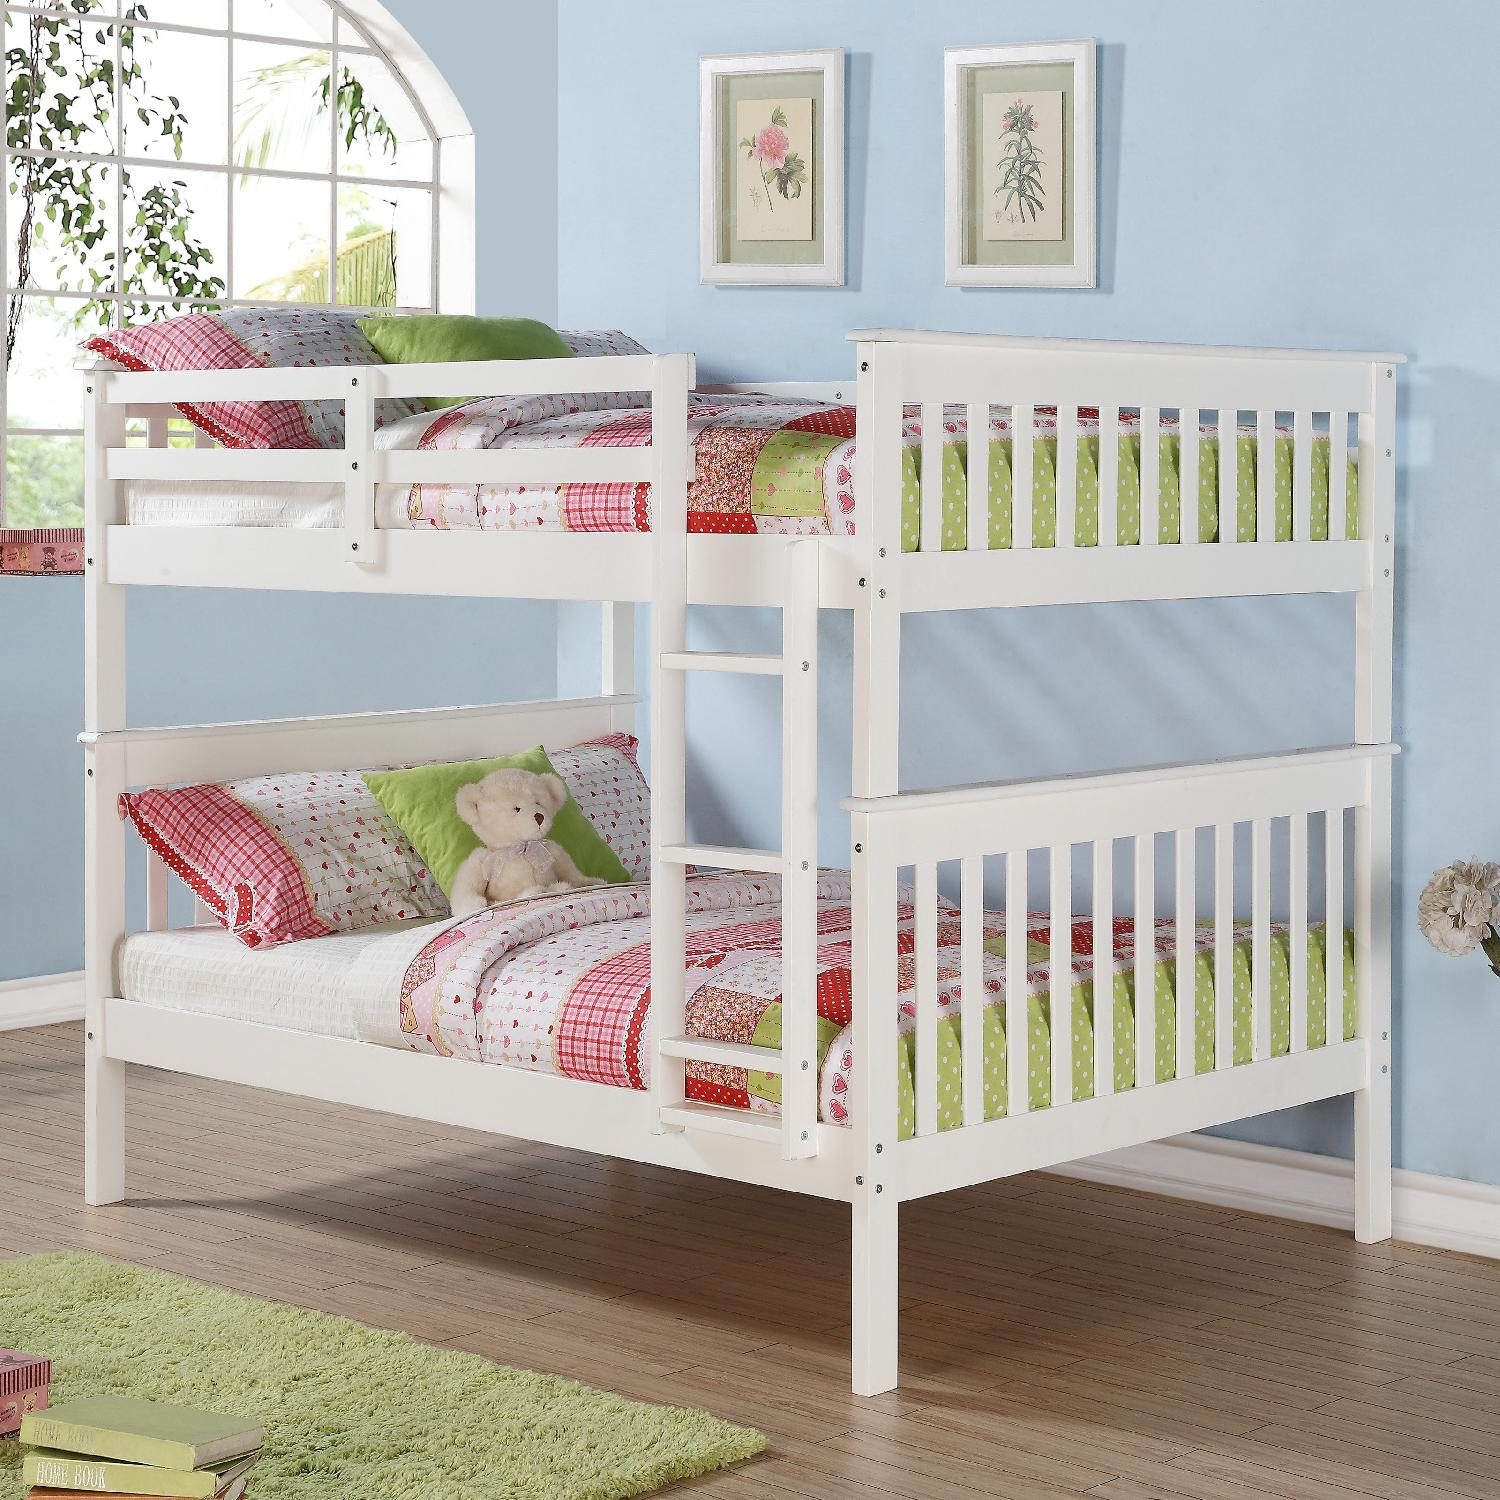 Donco Kids Mission Full Size Bunk Bed - image-6